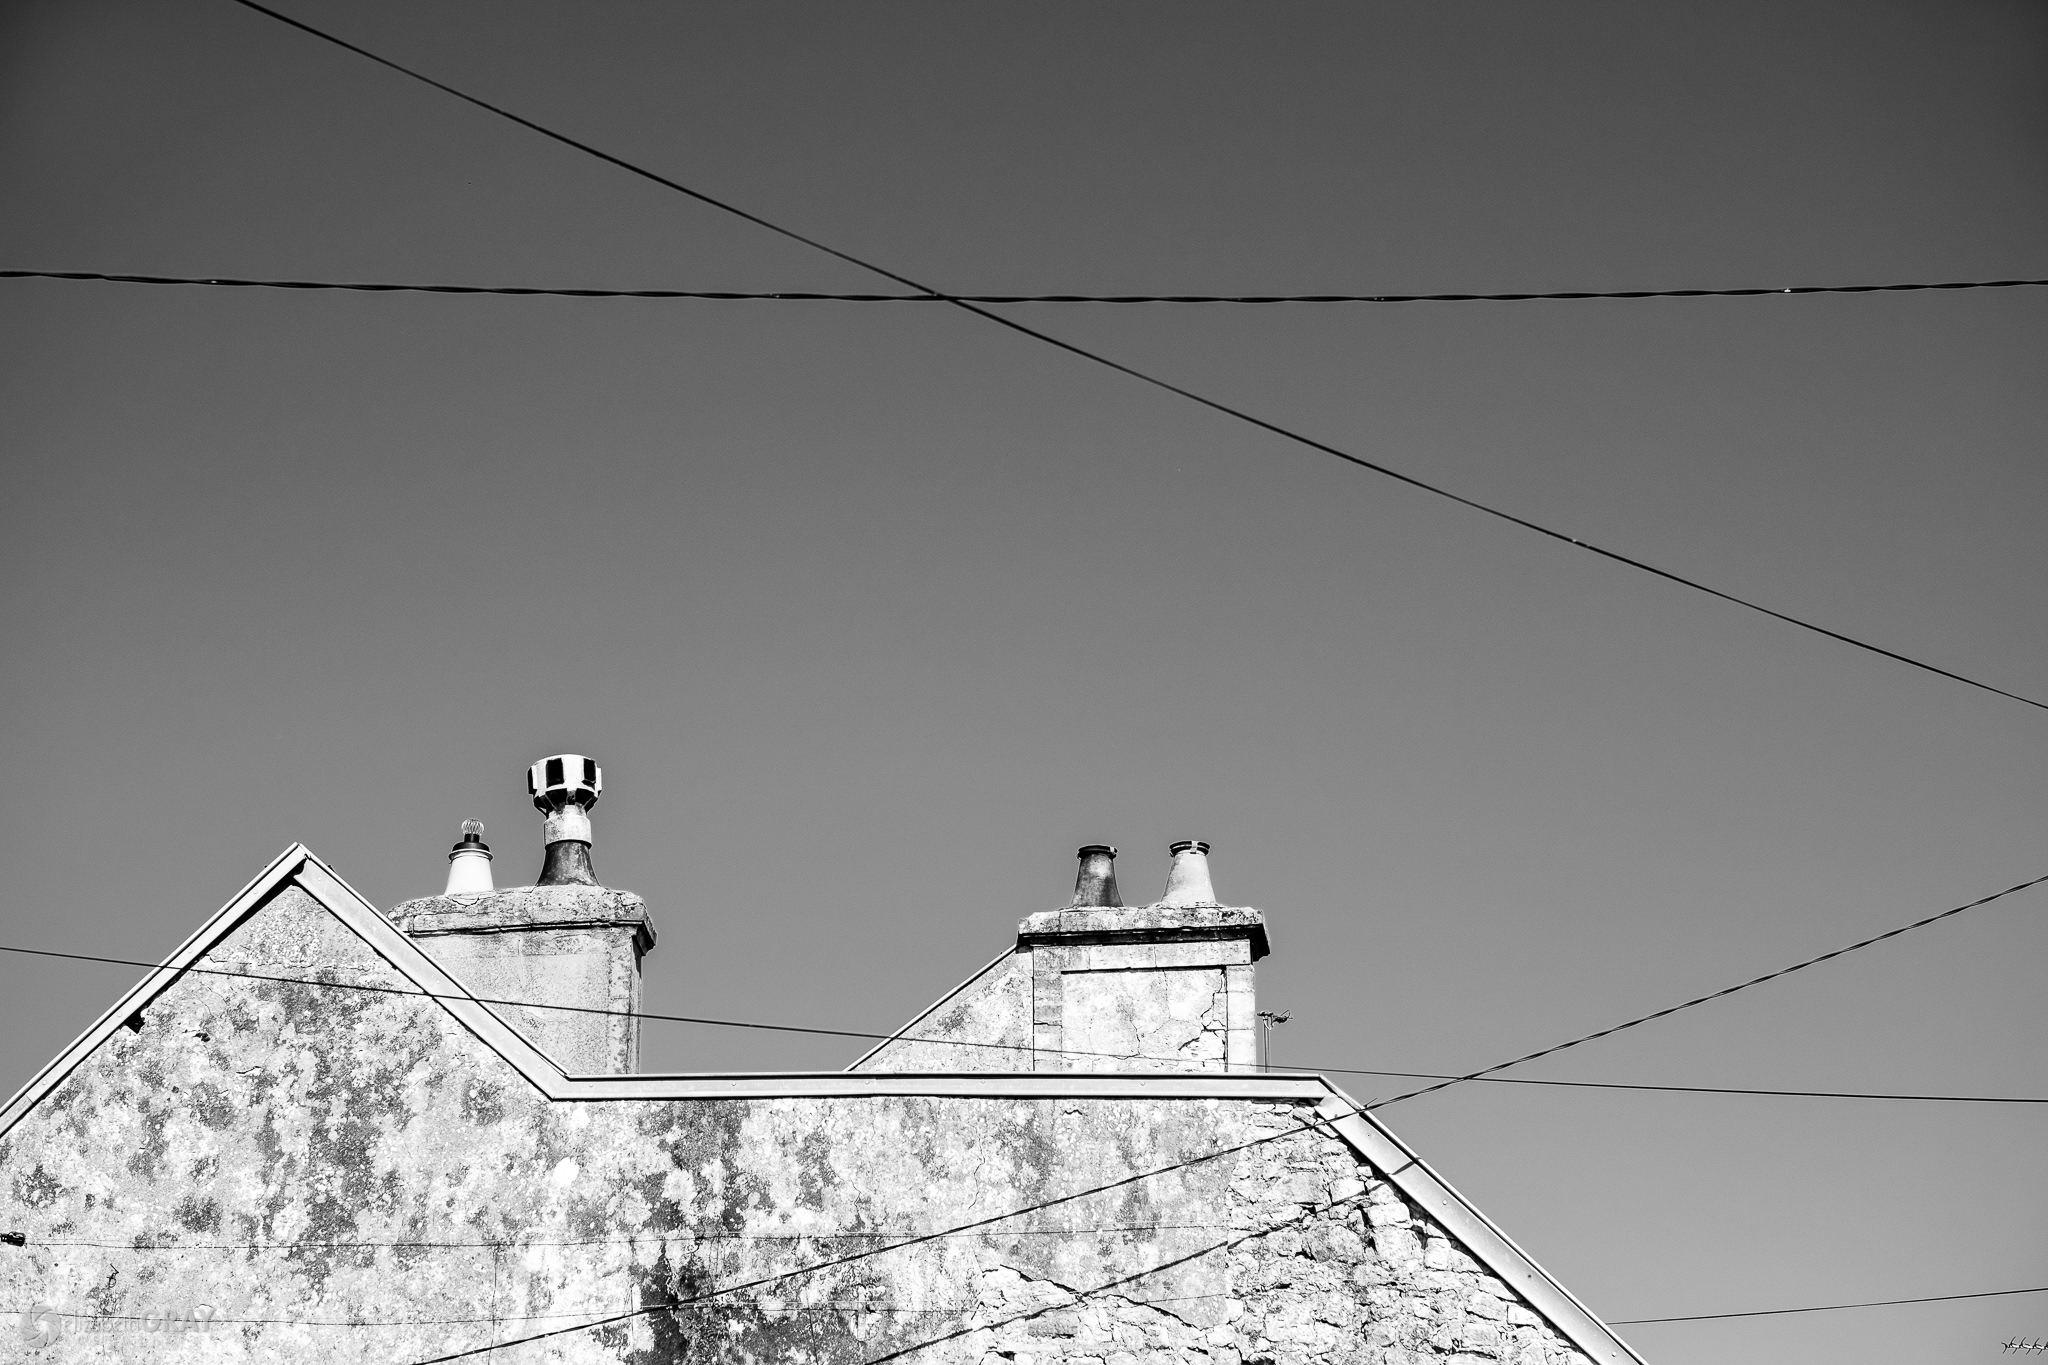 Chimneys and Wires